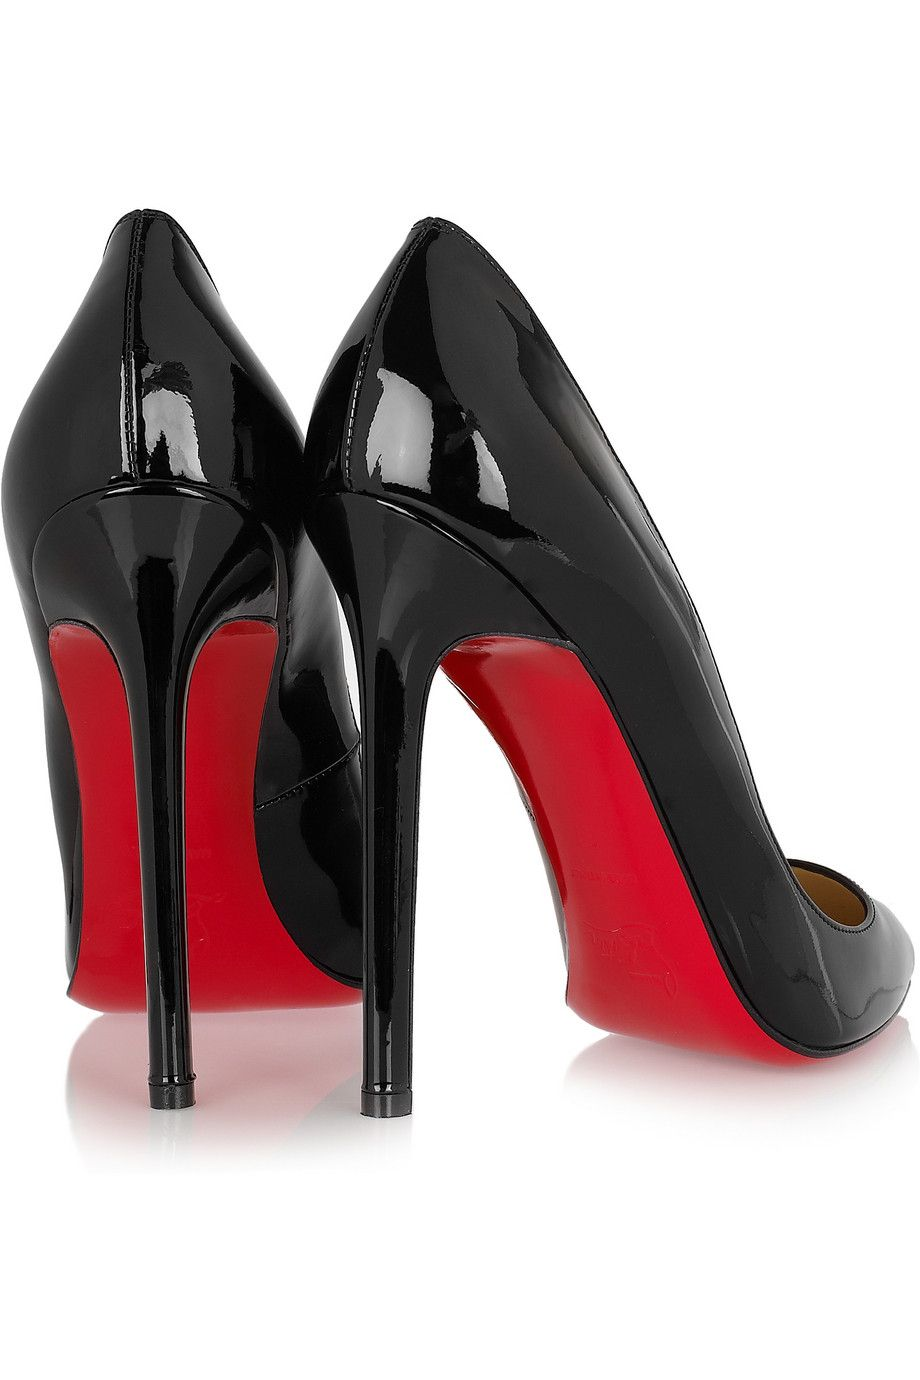 a735a3c84ff8 I love the red sole so much ... I actually treated myself to them! Devine!